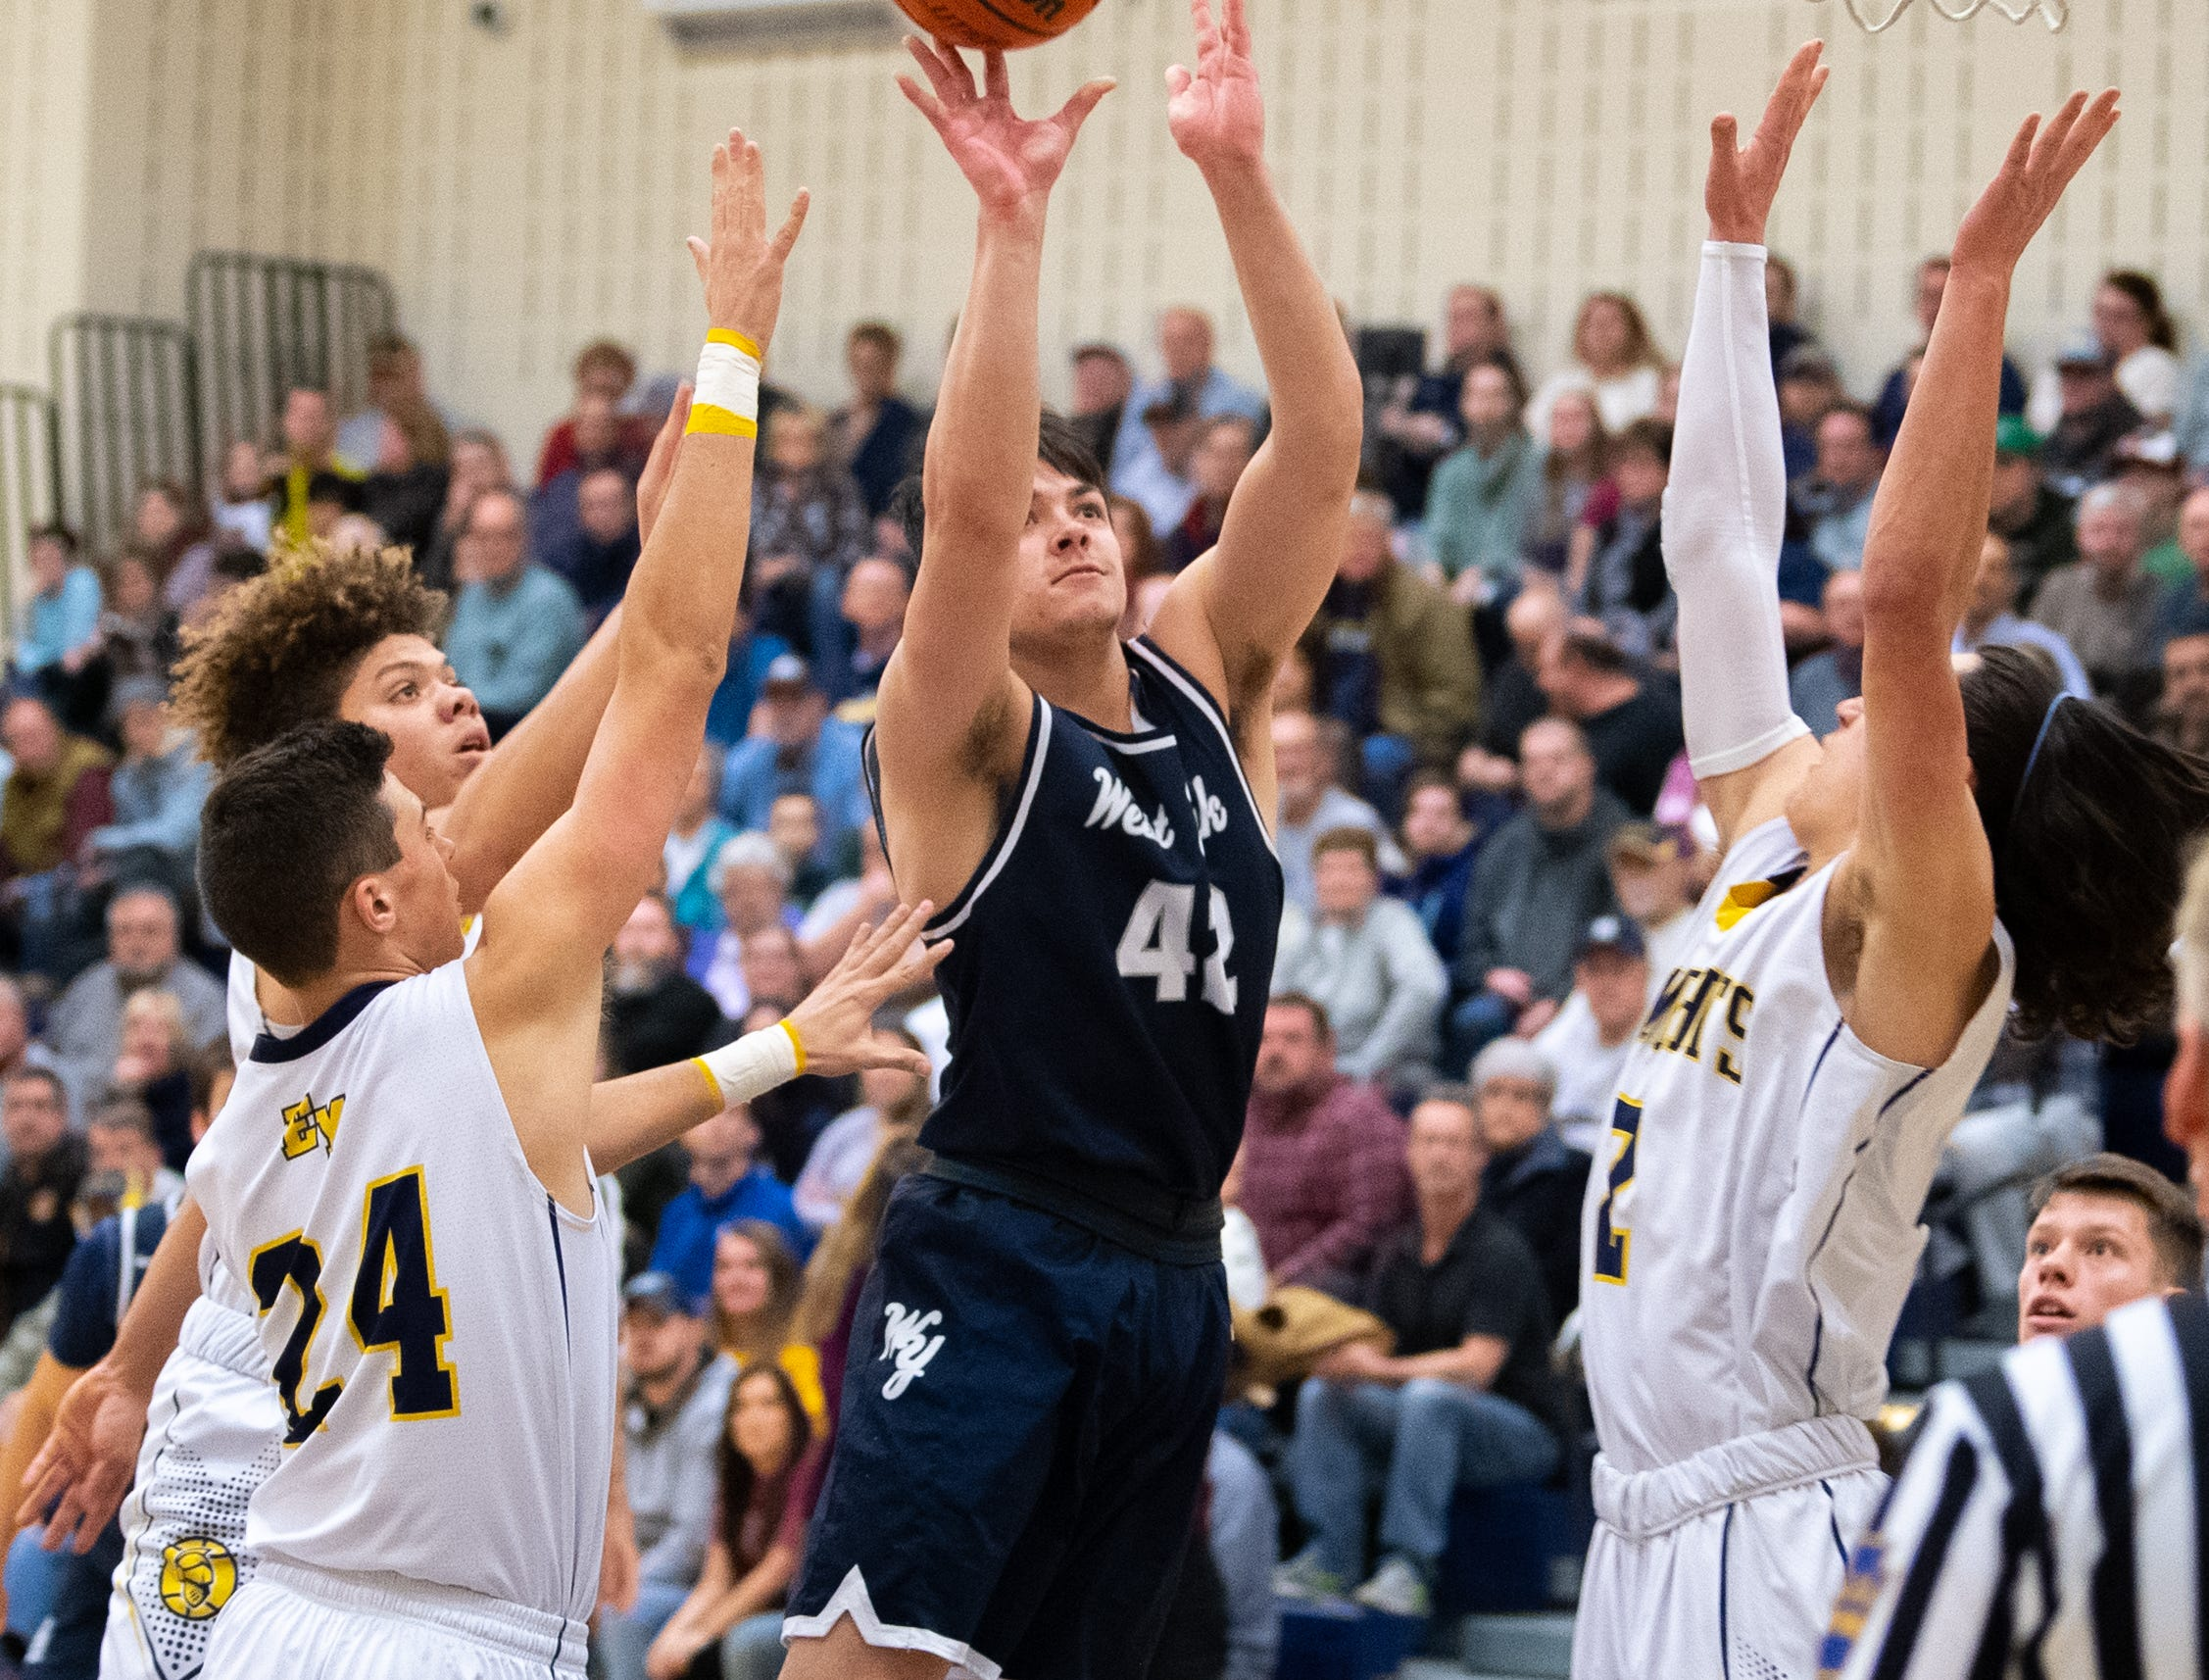 Gabe Mummert (42) takes a contested layup during the YAIAA boys' basketball game between Eastern York and West York, Friday, January 25, 2019. The Golden Knights defeated the Bulldogs 59 to 55.